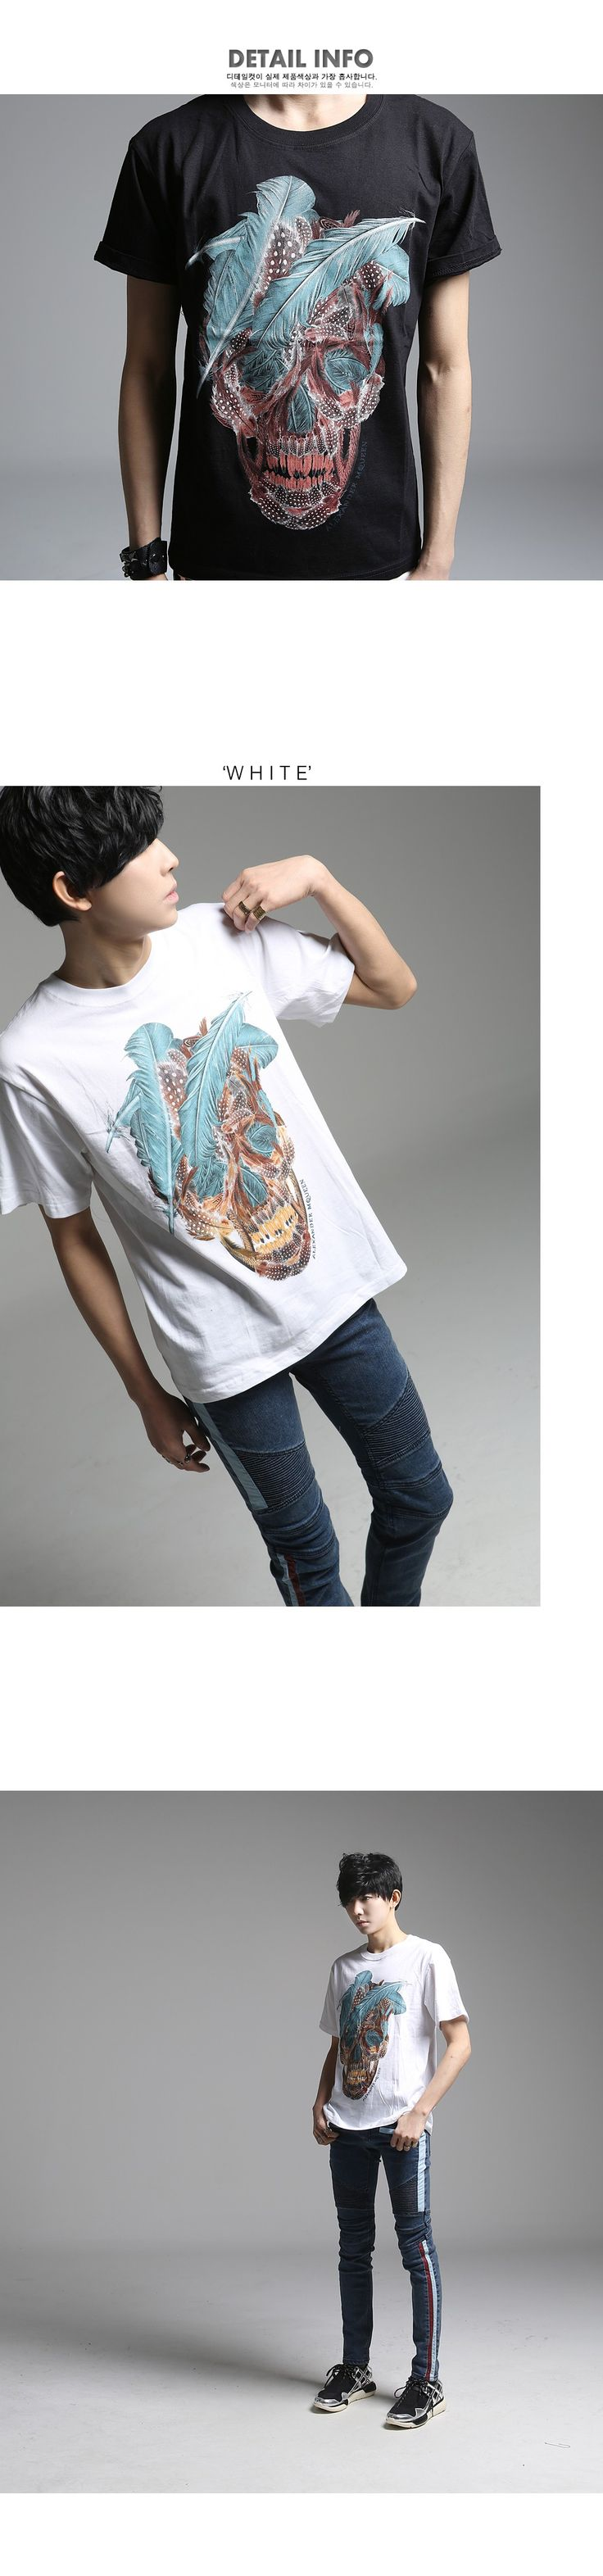 K-POP Men's Fashion Style Store [TOMSYTLE]  leaf Chaos Skull Short-sleeve T / Price : 32.61 USD #dailylook #dailyfashion #casuallook #tops #Tshirt #TOMSTYLE #OOTD  http://en.tomstyle.net/